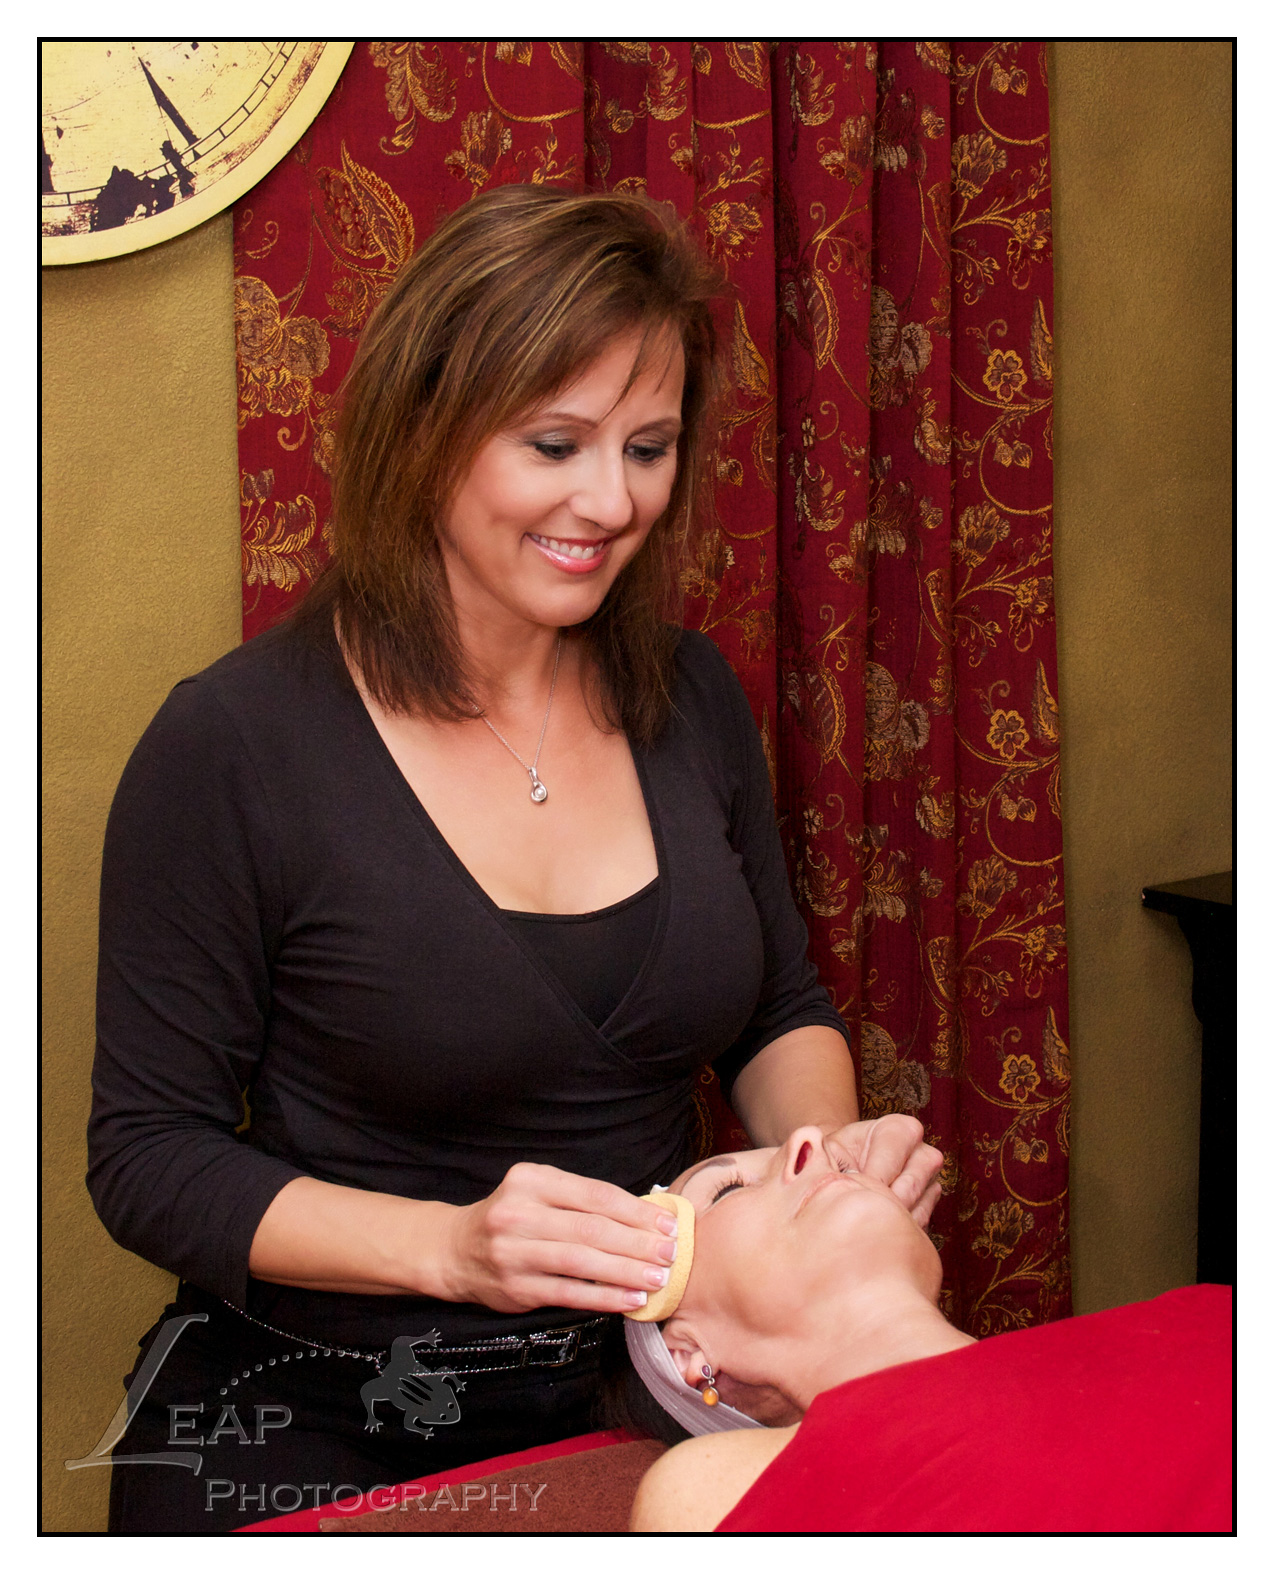 women giving a facial to another woman